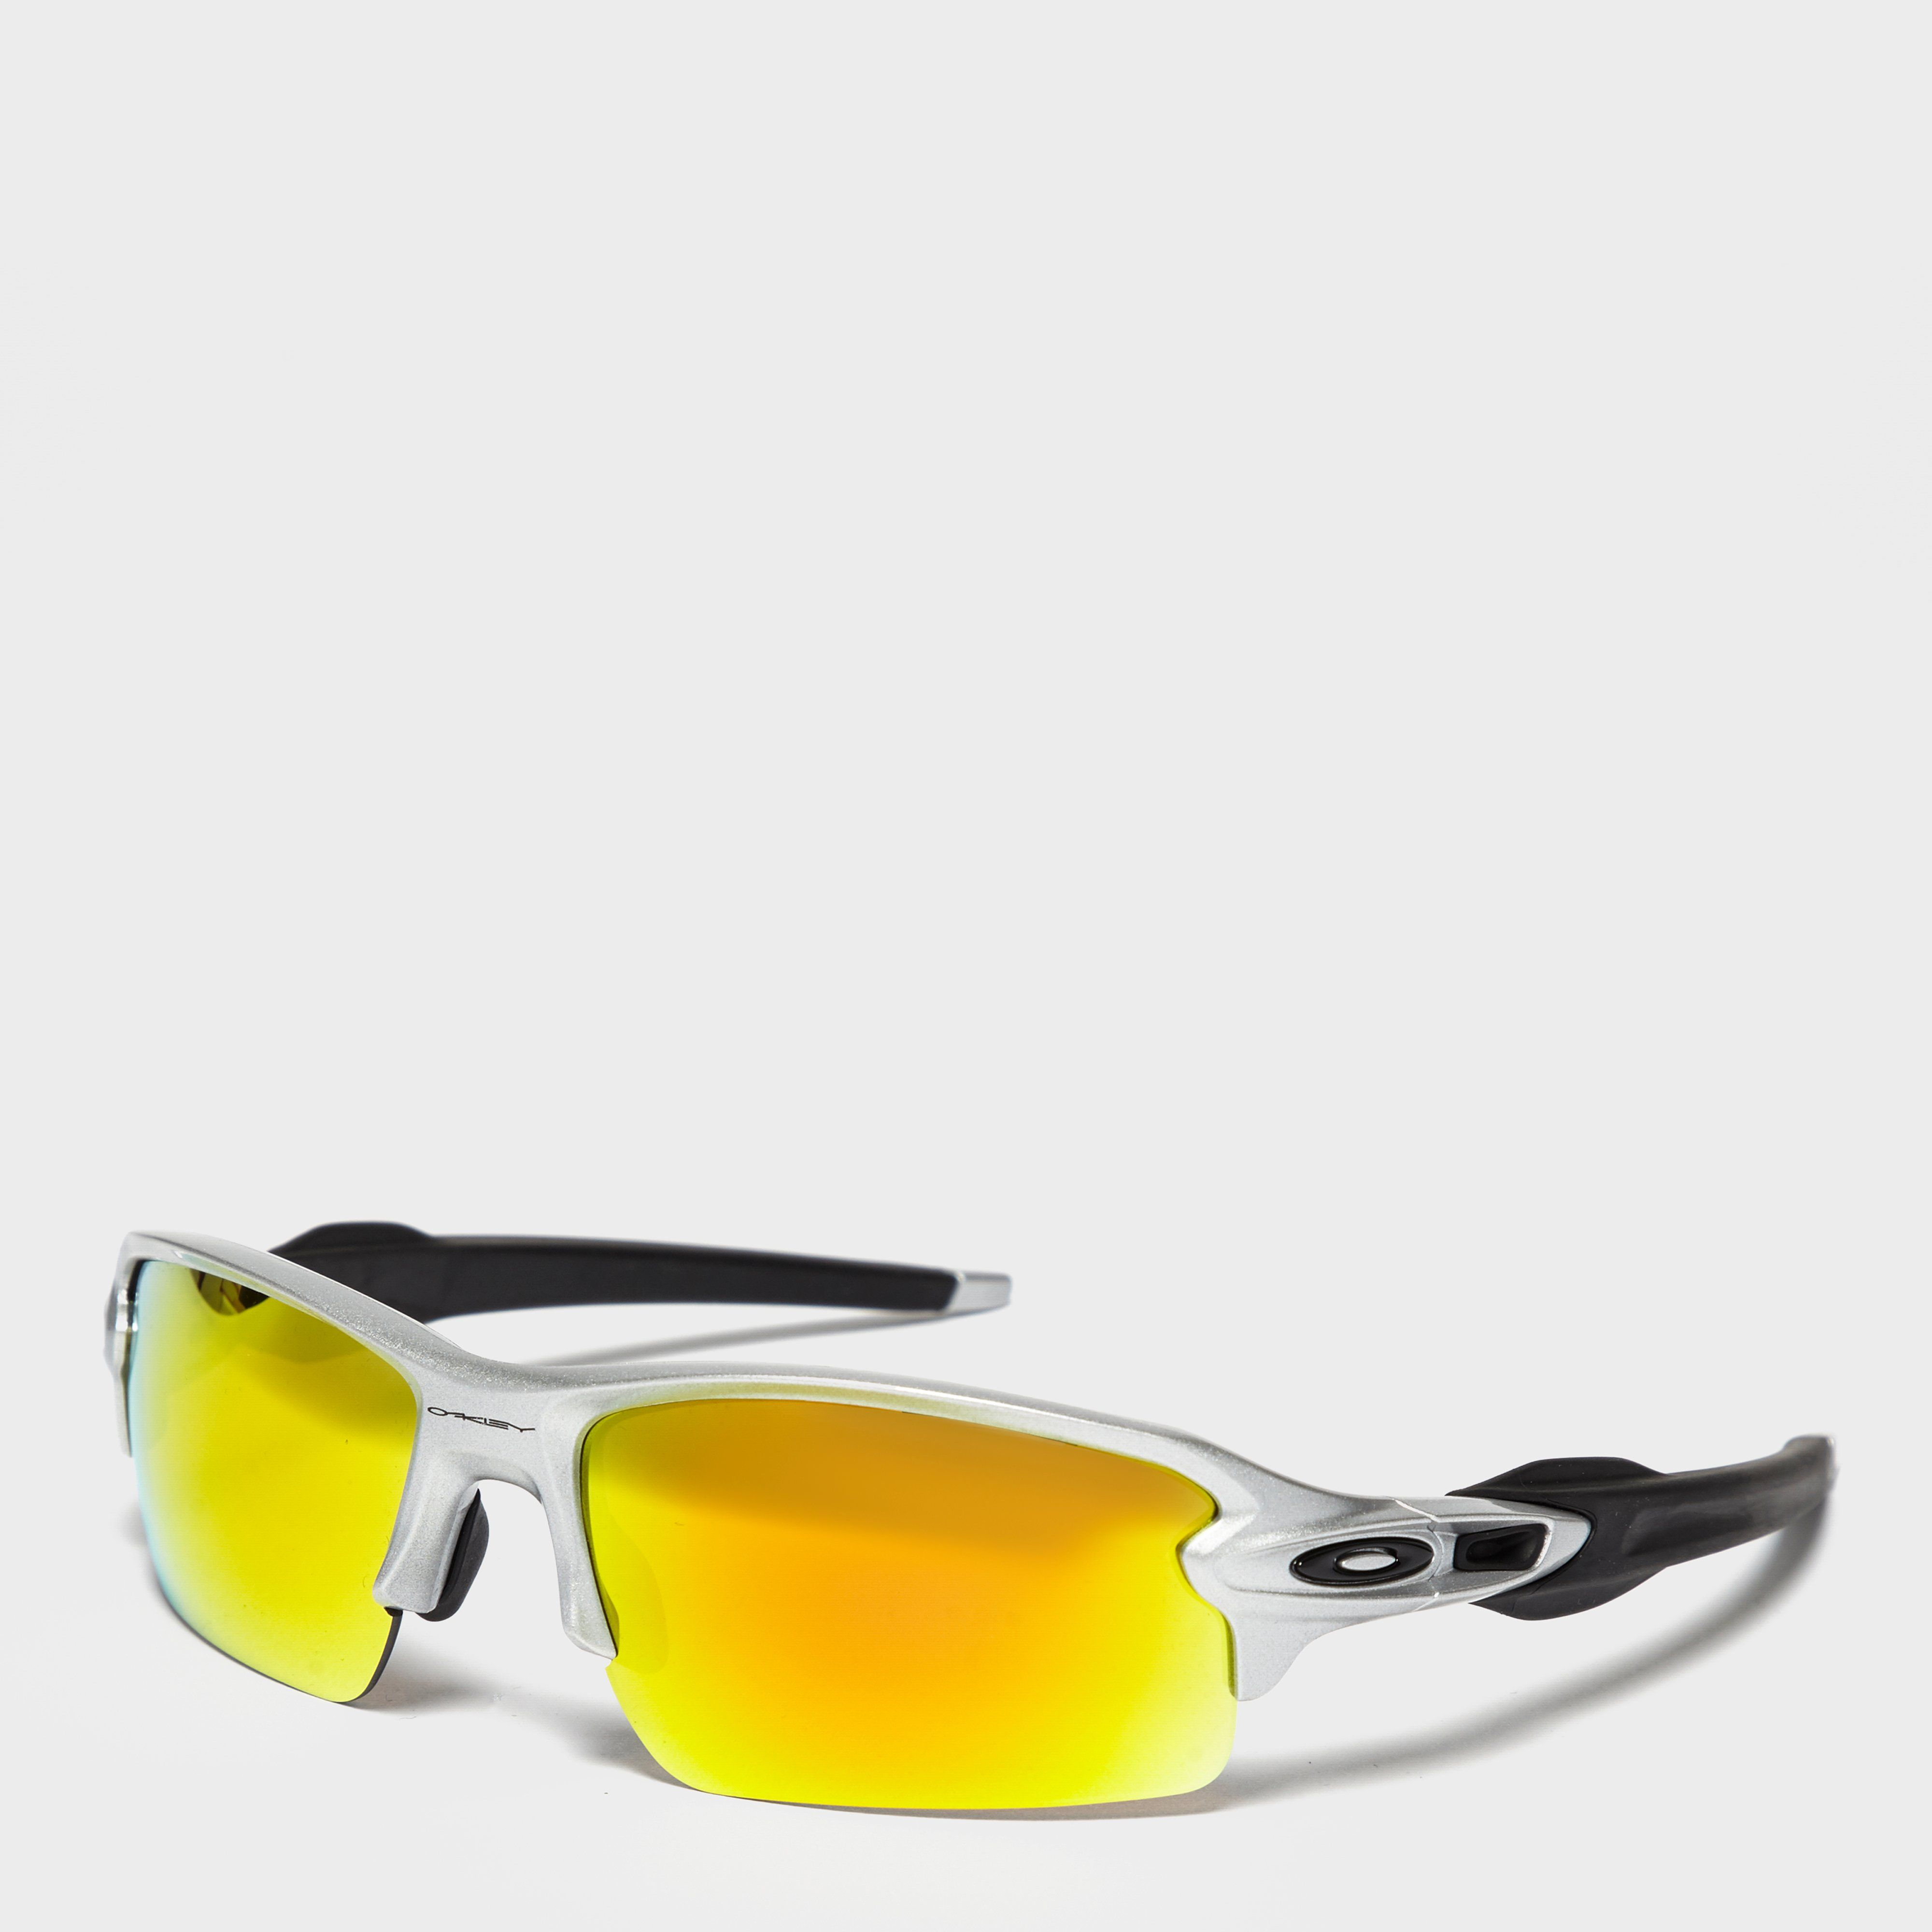 OAKLEY Flak™ 2.0 Fire Iridium Sunglasses